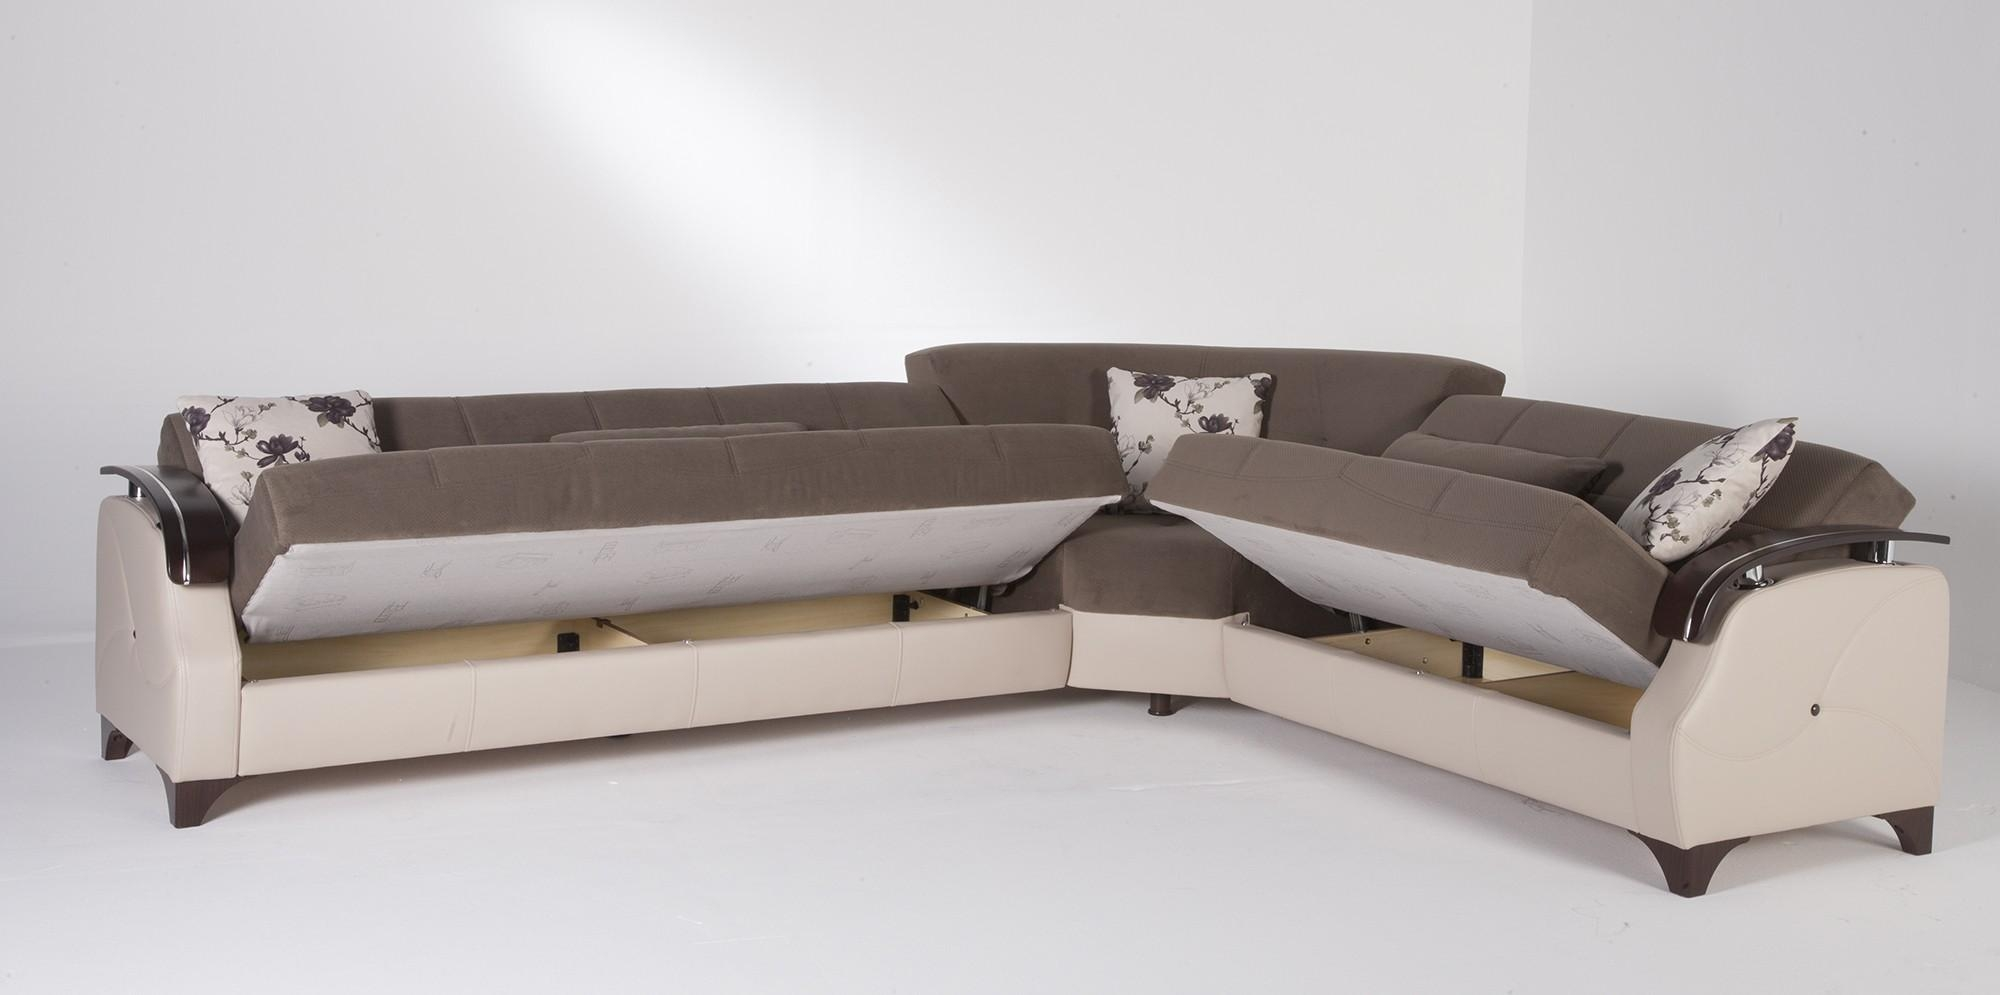 Sleeper Sofas | Keko Furniture Intended For Sleeper Sofas (Image 14 of 20)